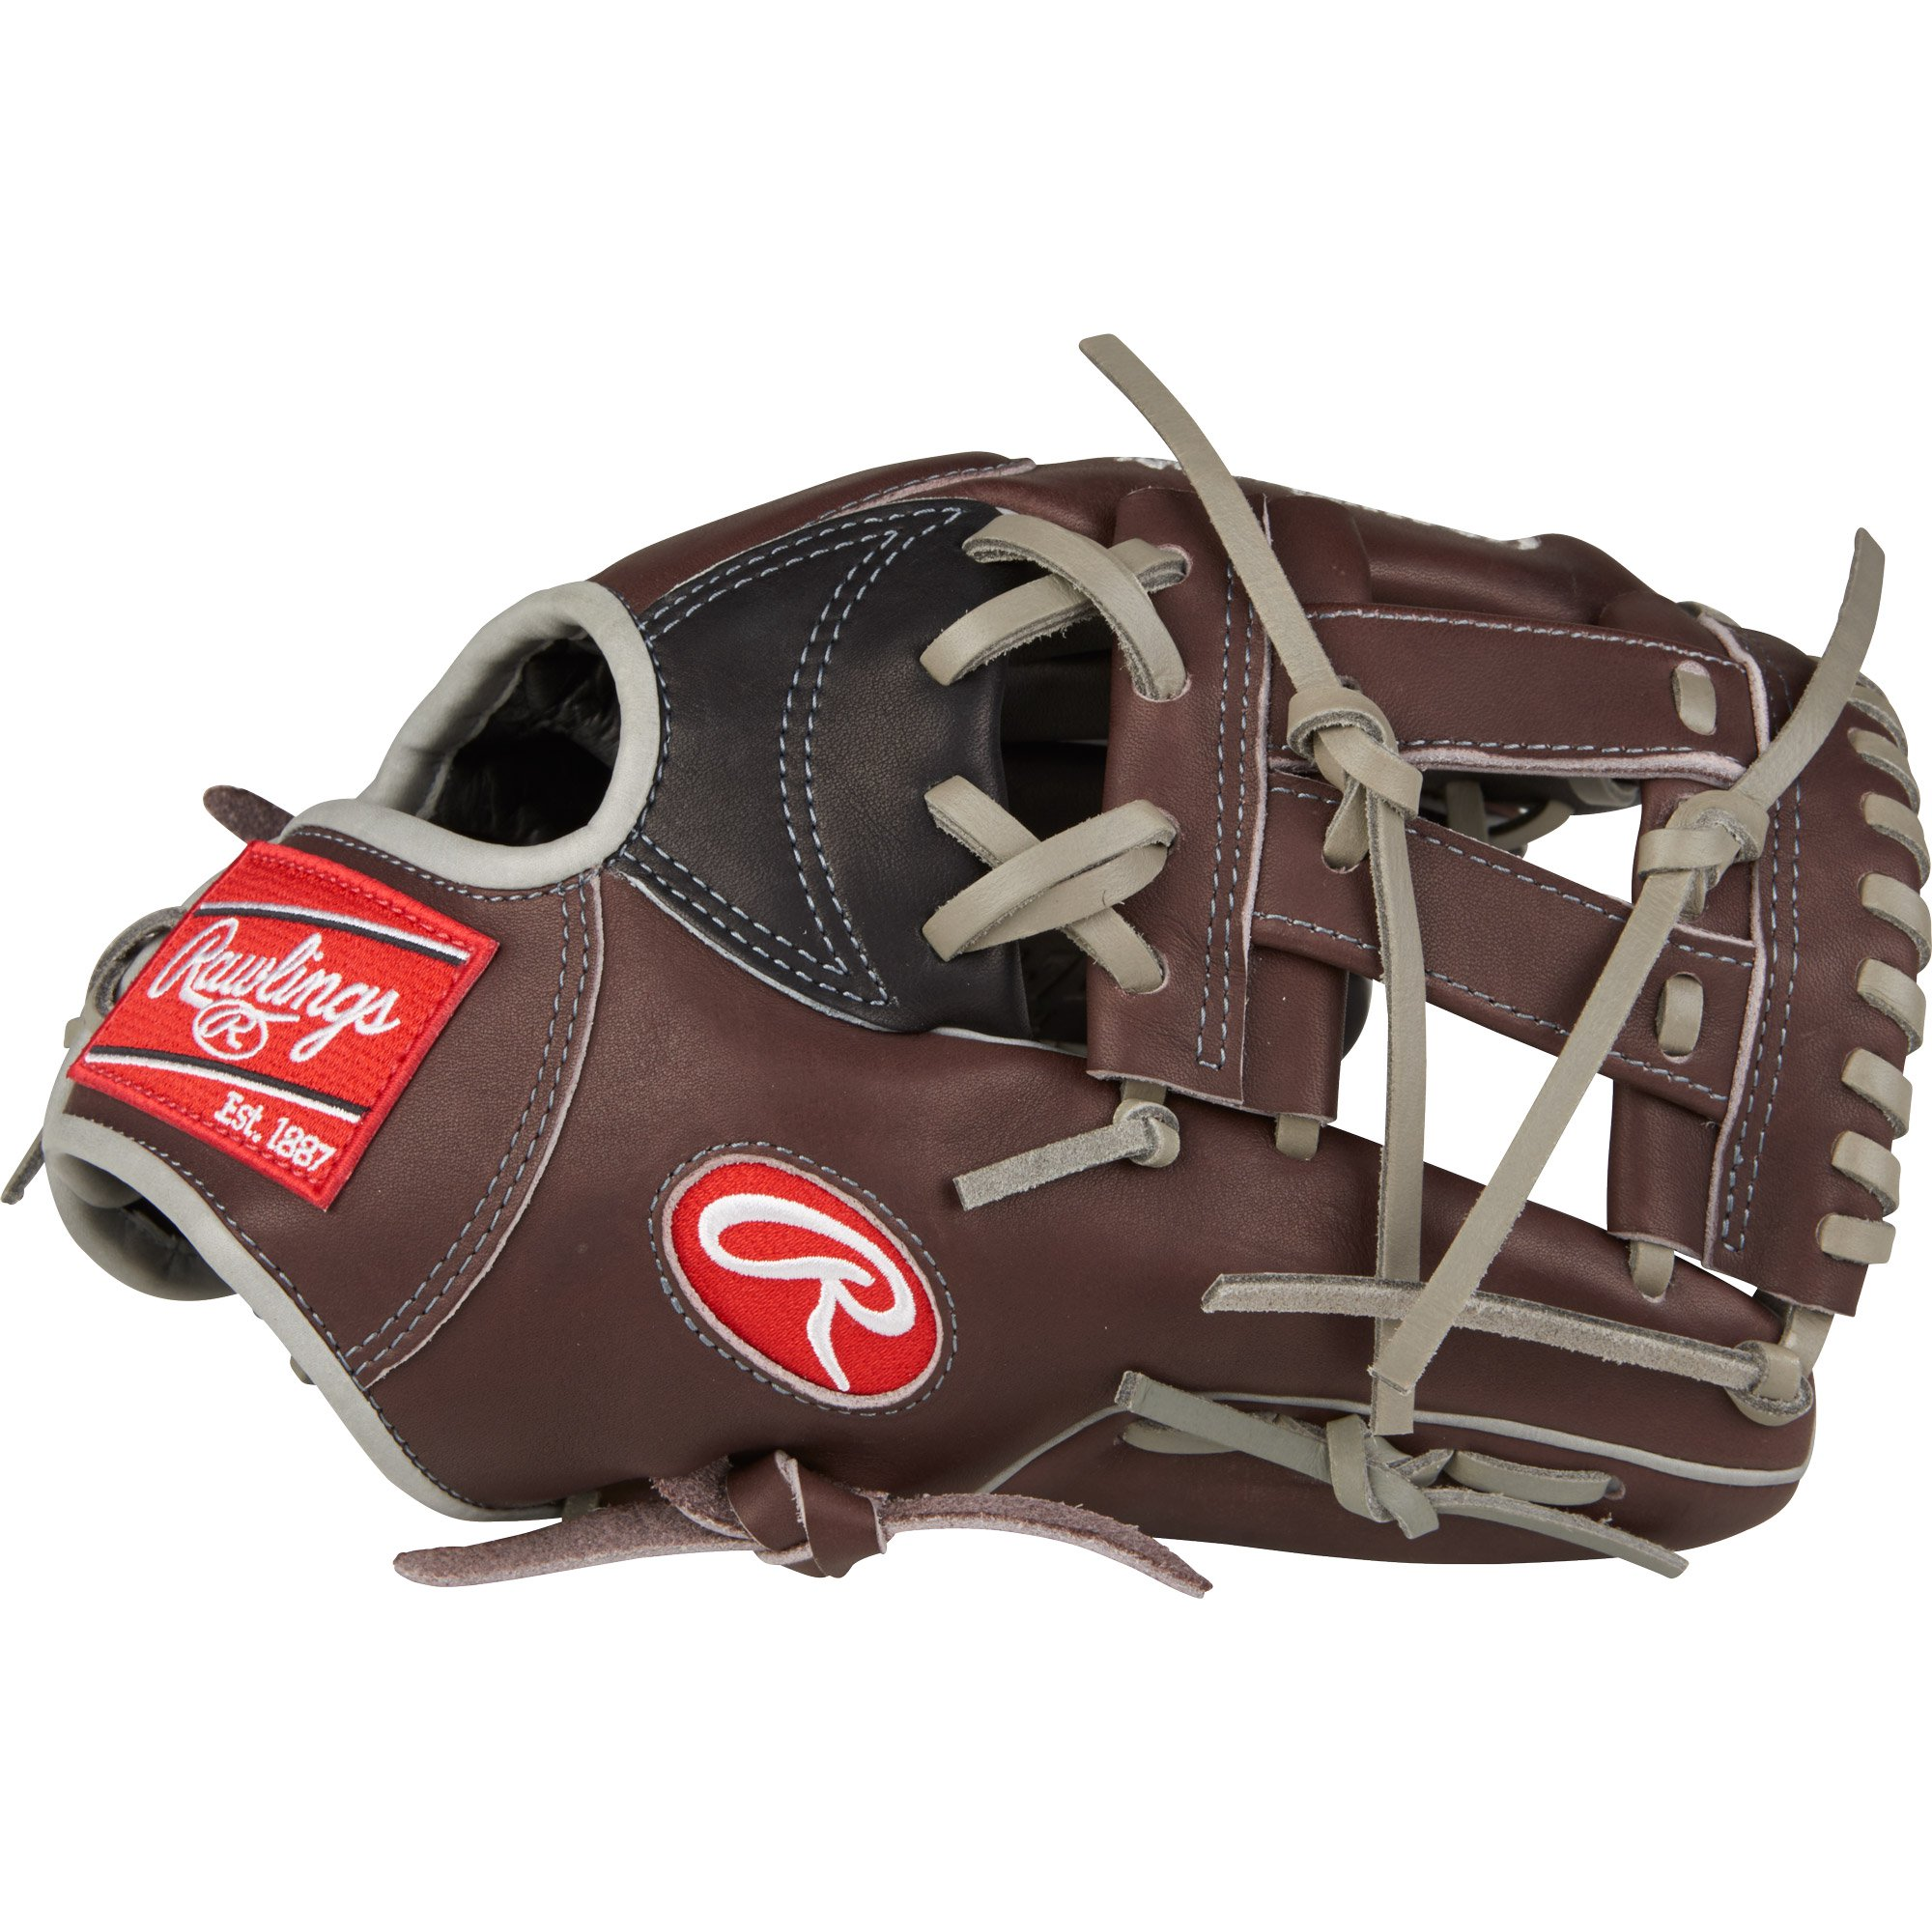 "Rawlings 11.75"" Heart of the Hide Series Infield/Pitcher Baseball Glove, Right Hand Throw"